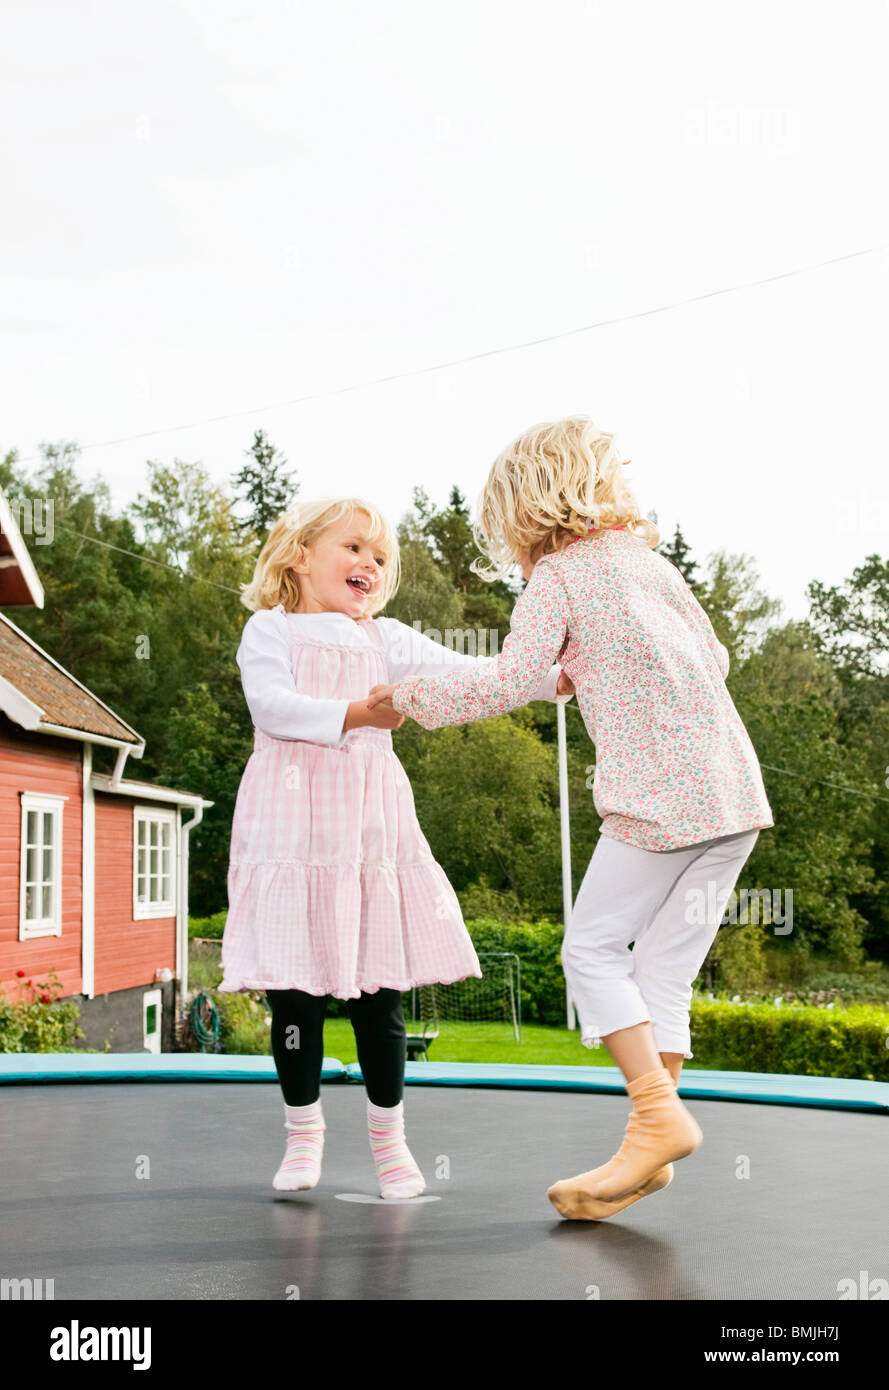 Two sisters jumping on rebouncer - Stock Image